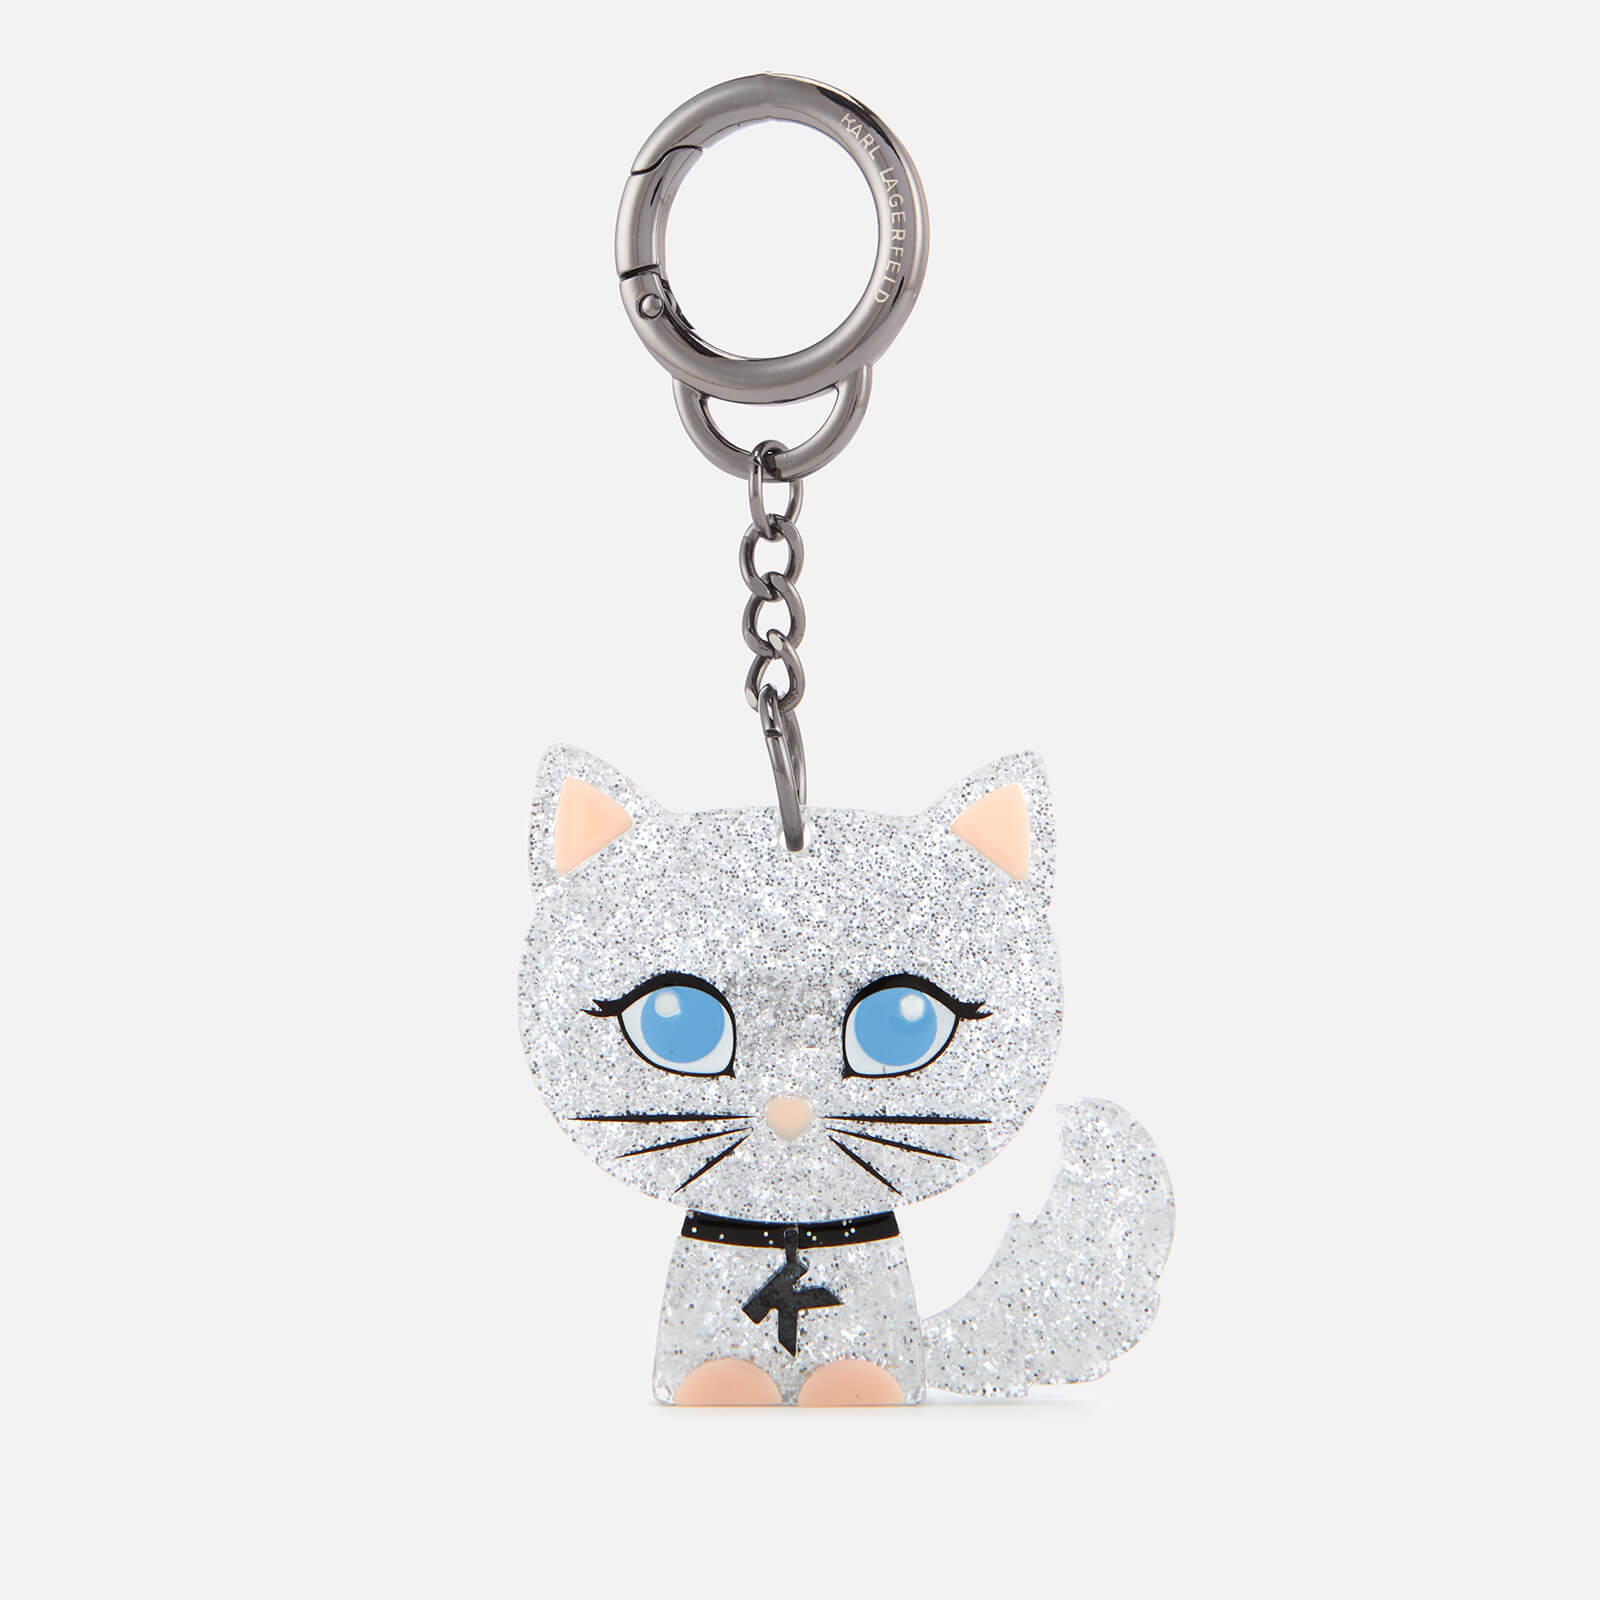 Karl Lagerfeld Women s K Choupette Plexi Keychain - Clear - Free UK  Delivery over £50 40b012a20